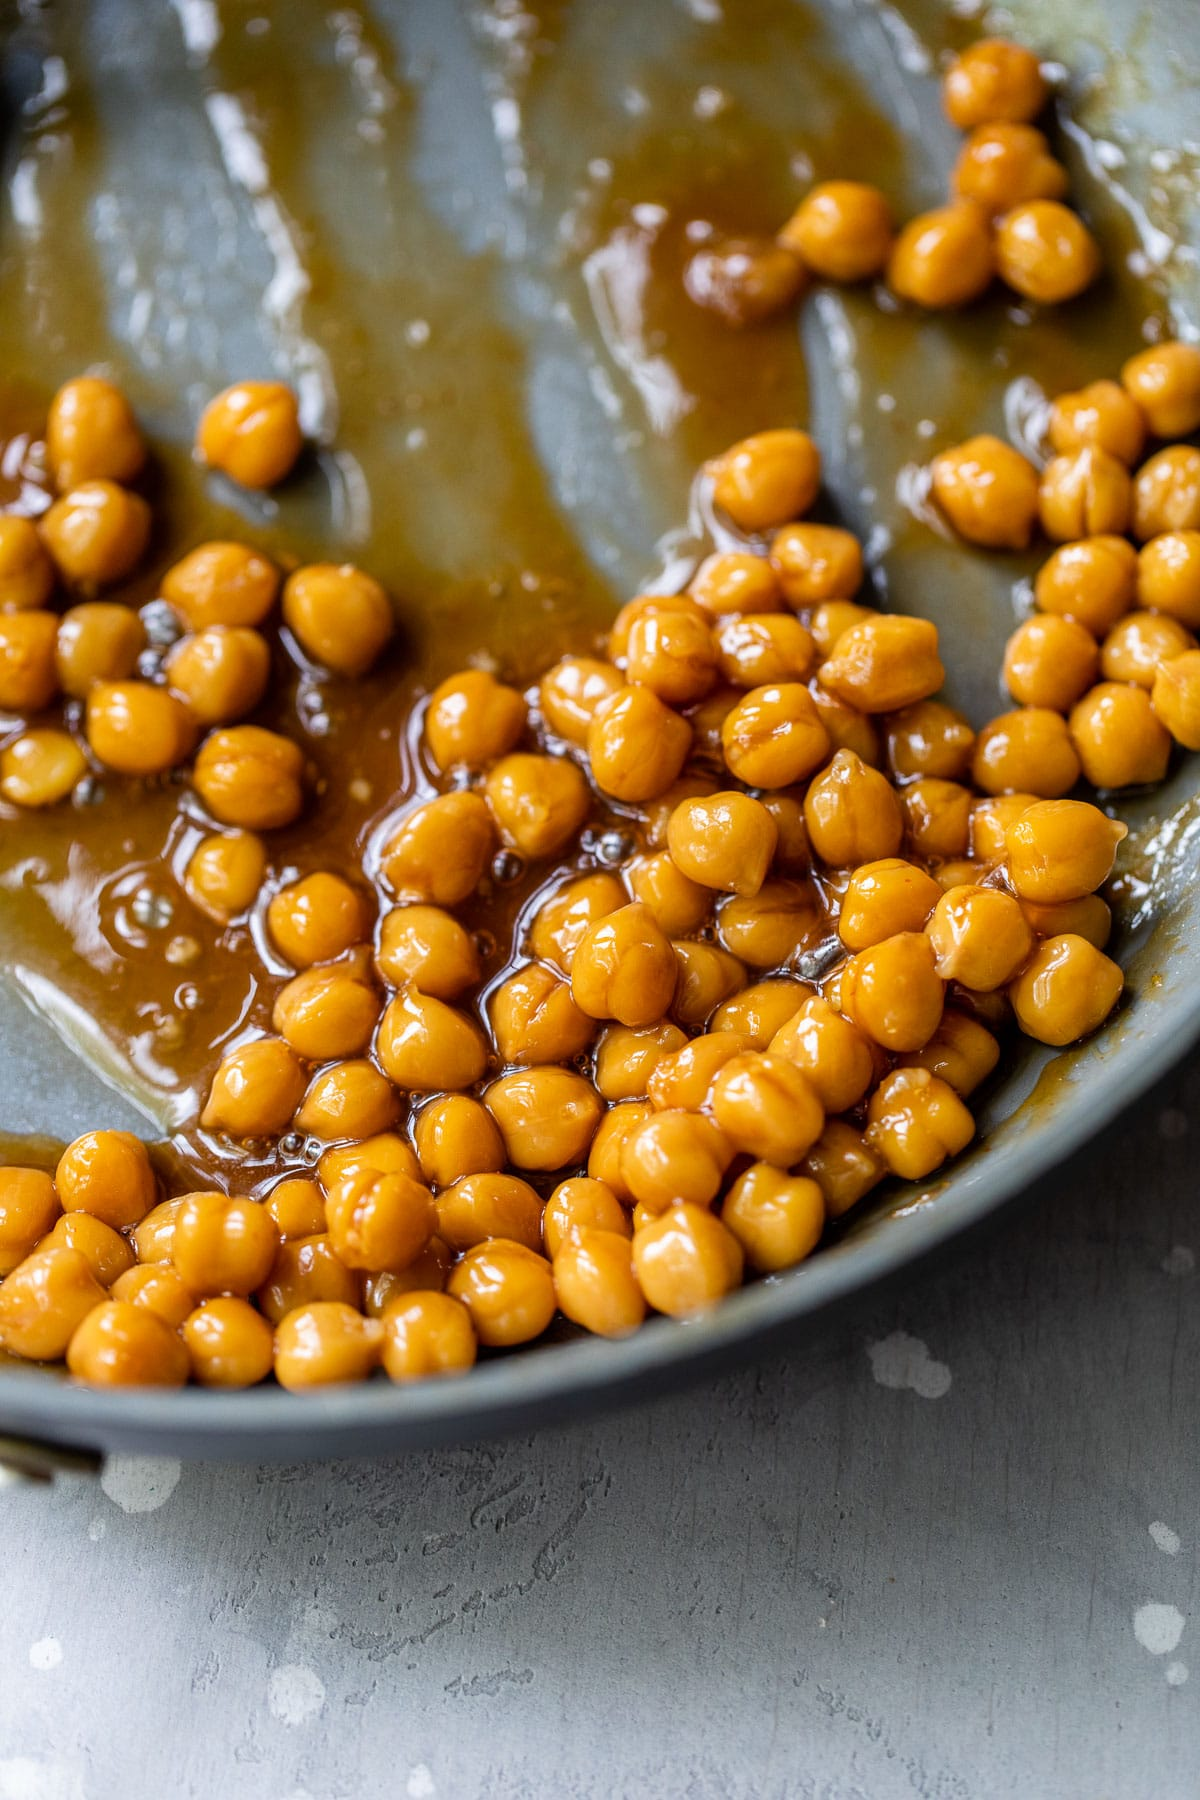 marinated chickpeas in a skillet